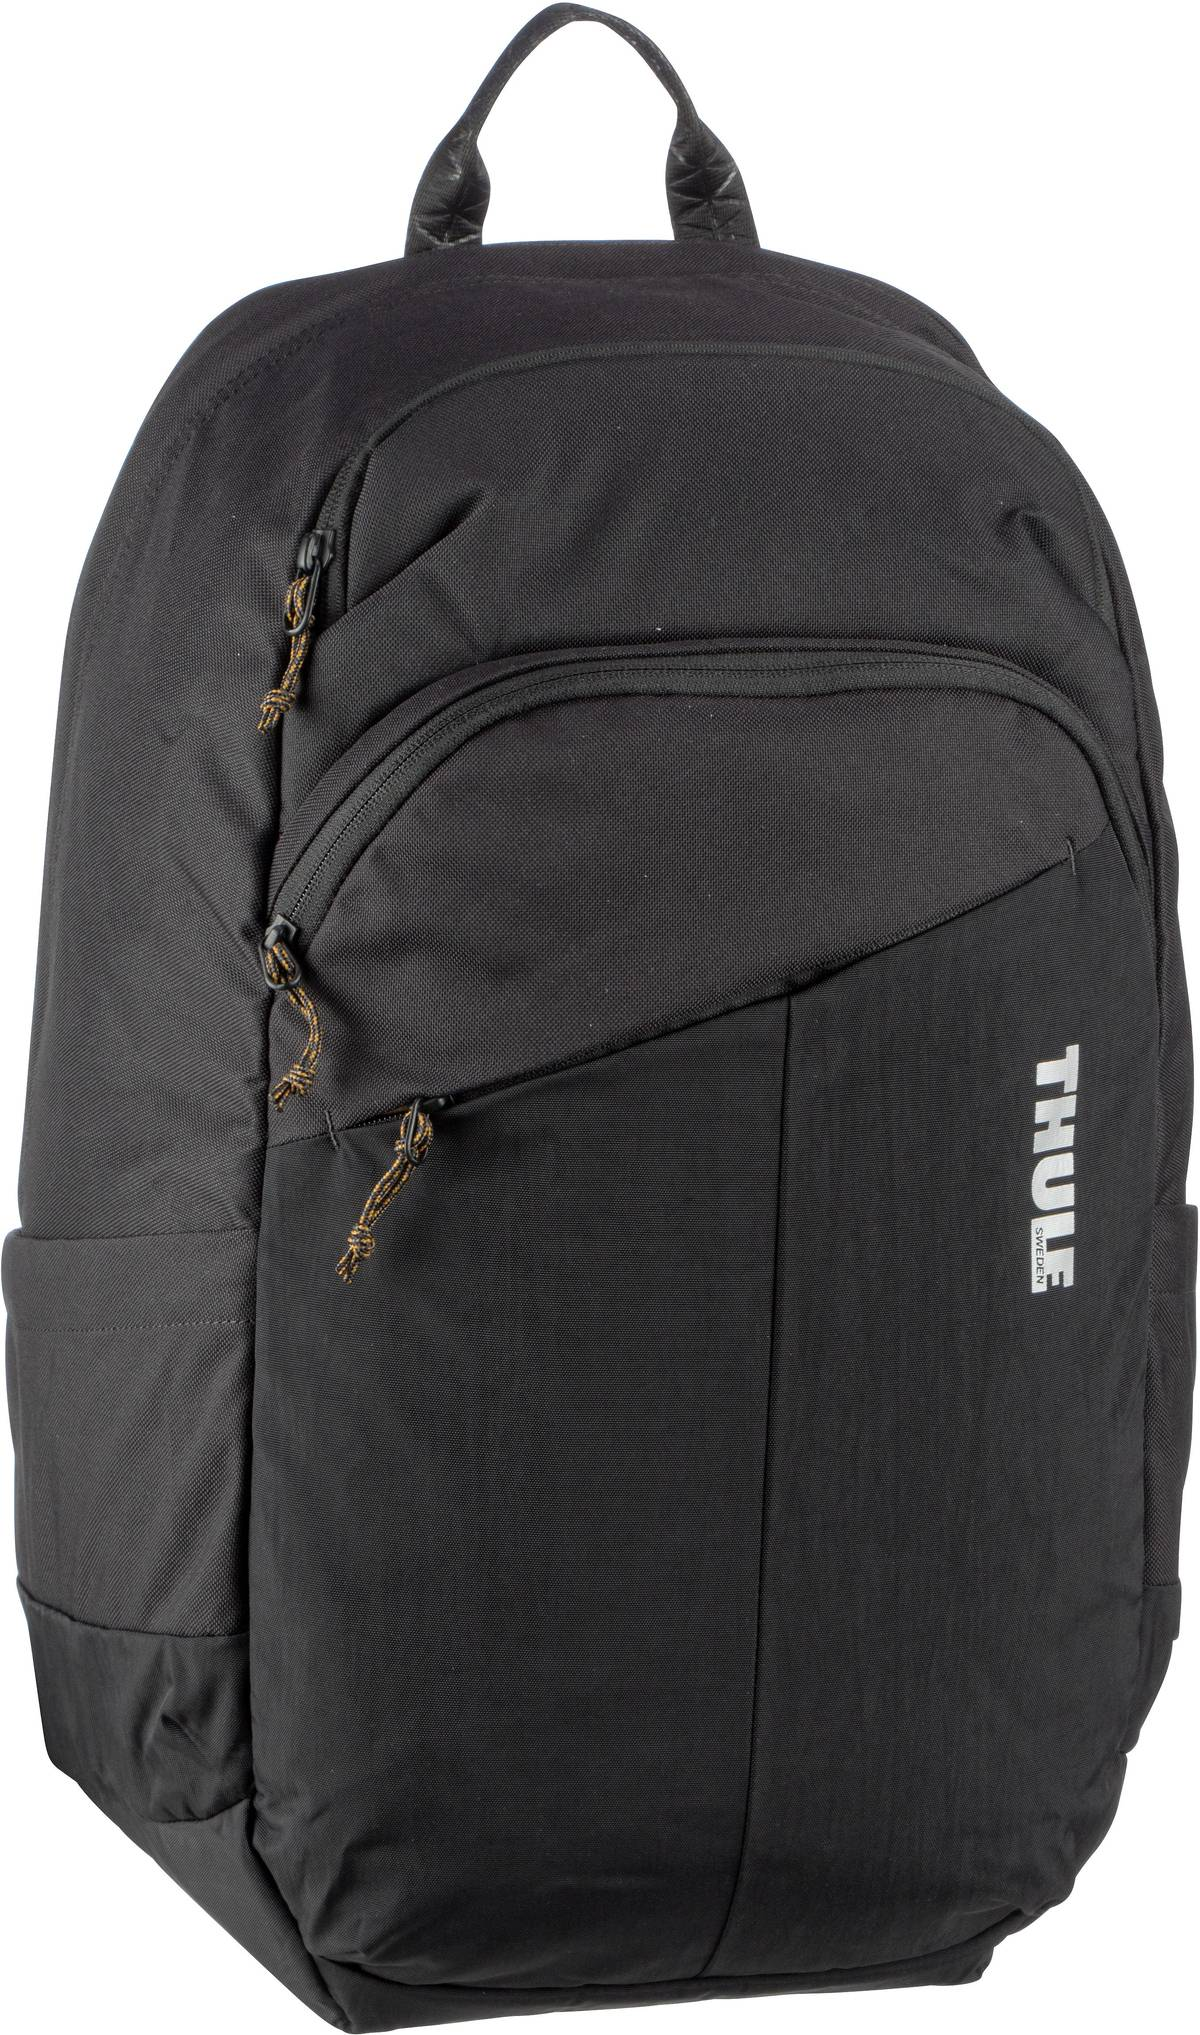 Laptoprucksack Exeo Backpack Black (28 Liter)